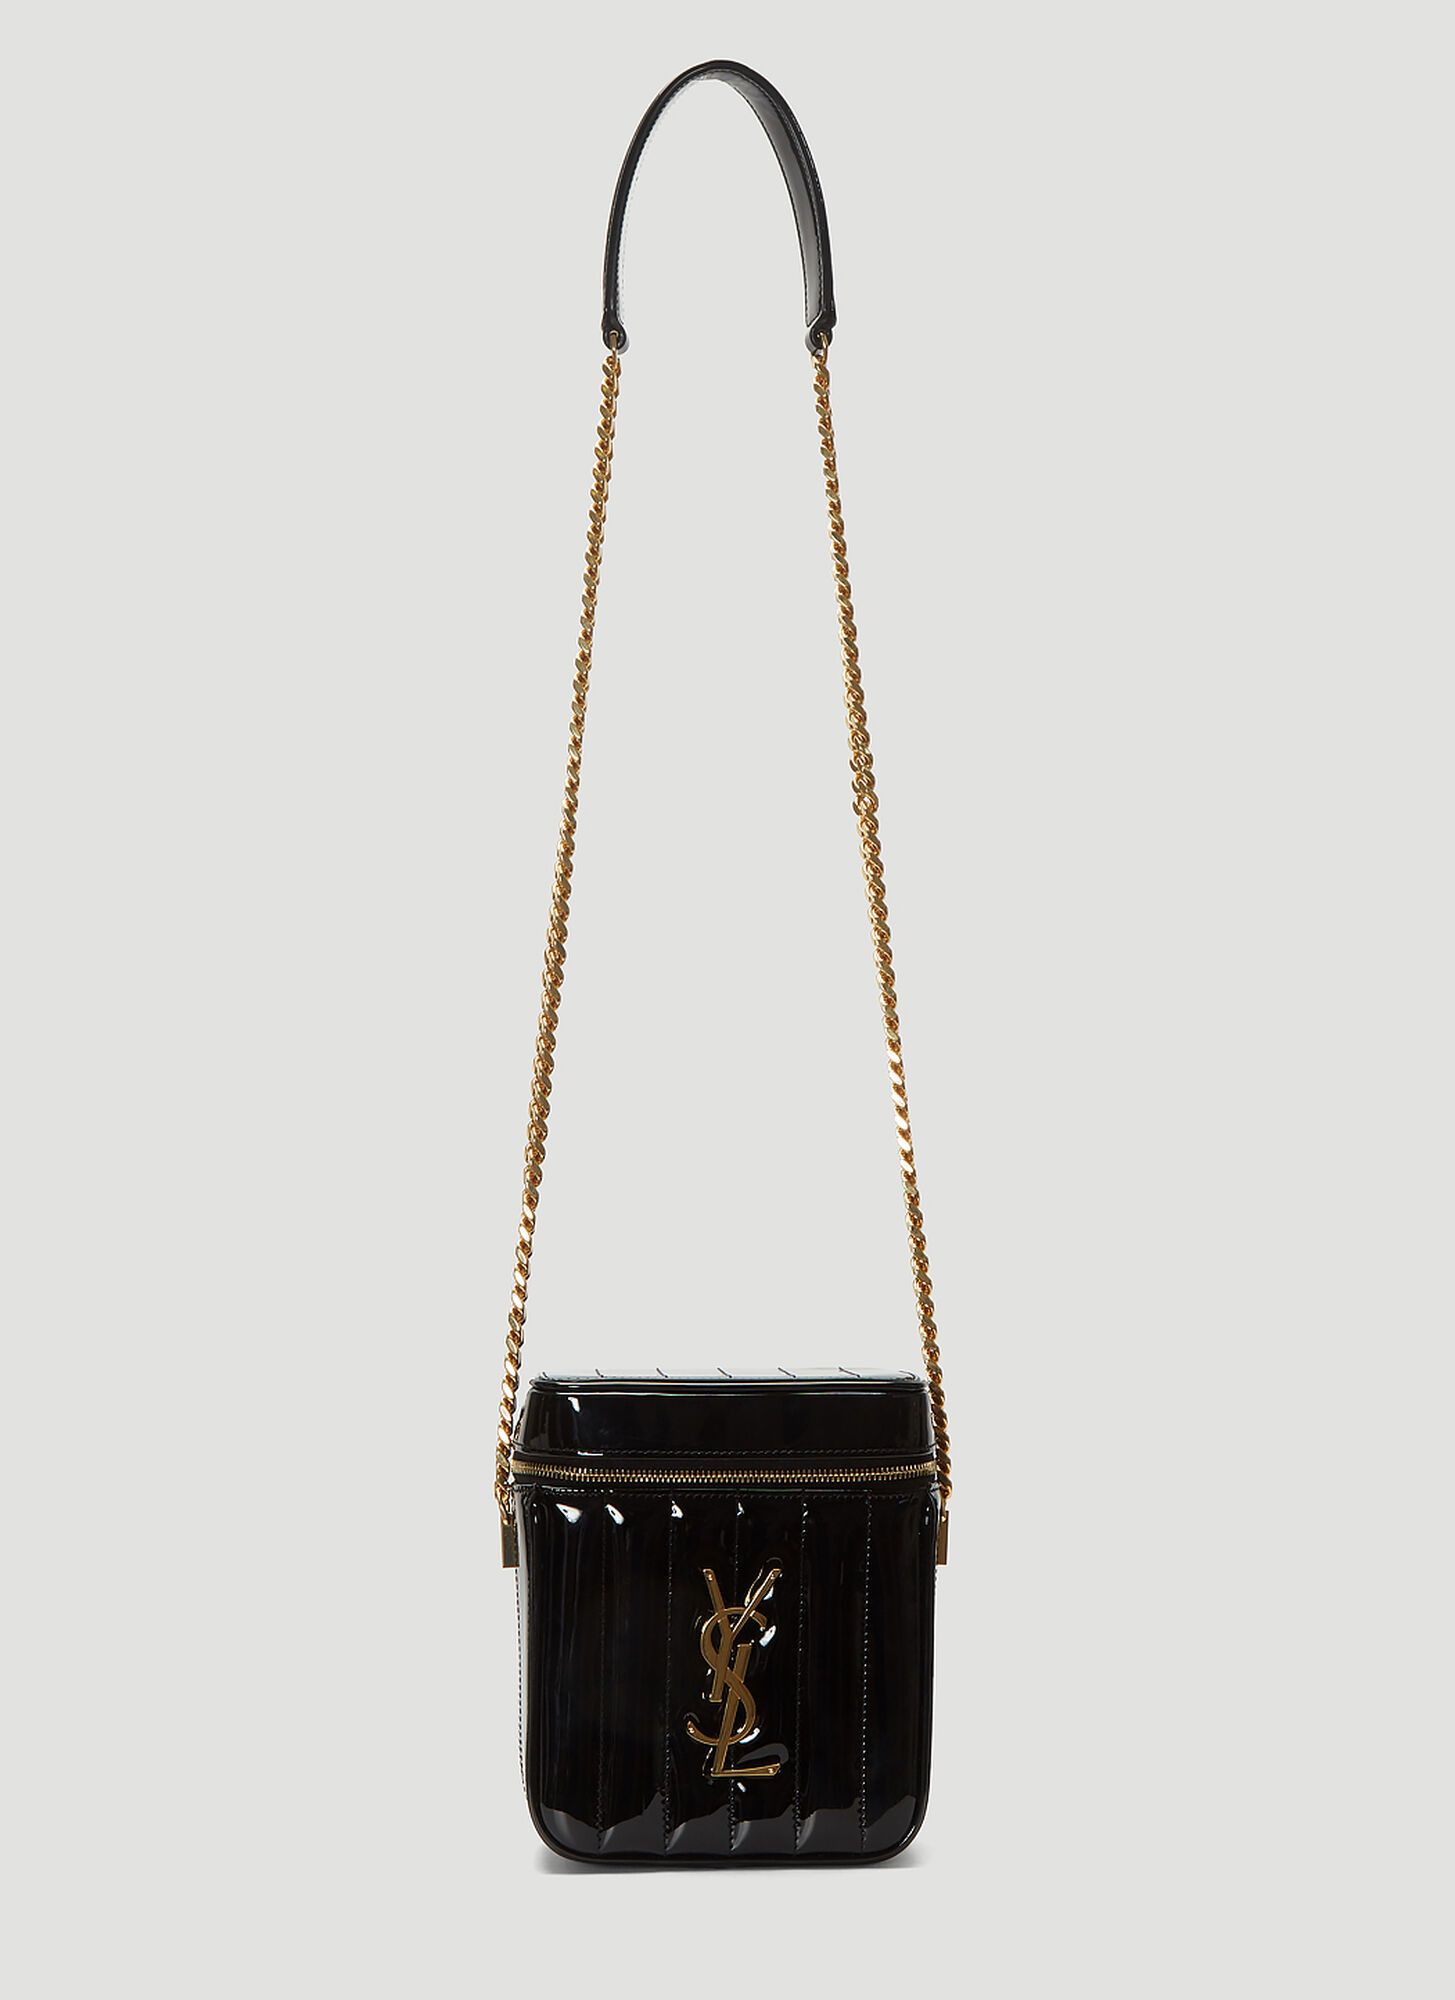 Saint Laurent Patent Vicky Bag in Black